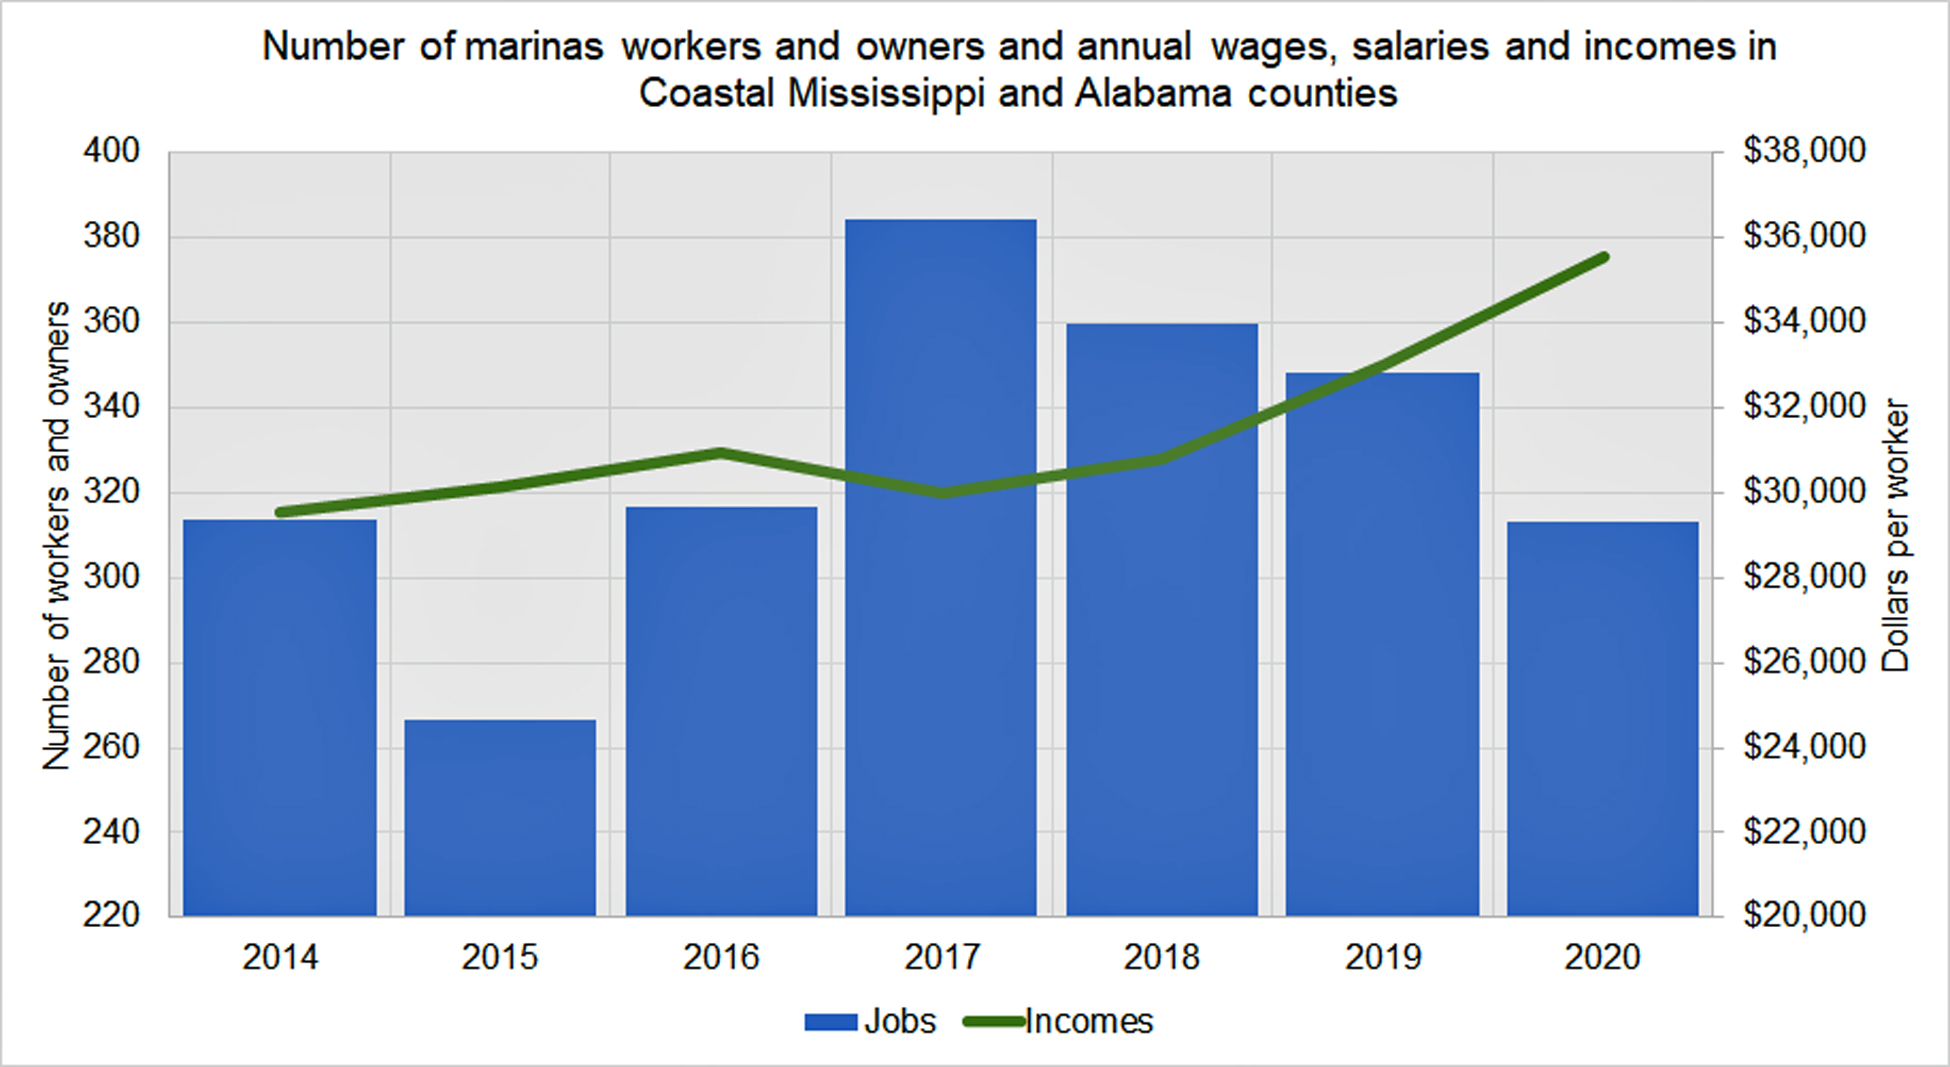 number_of_workers_and_owners_of_marinas_in_coastal_ms_and_al.jpg